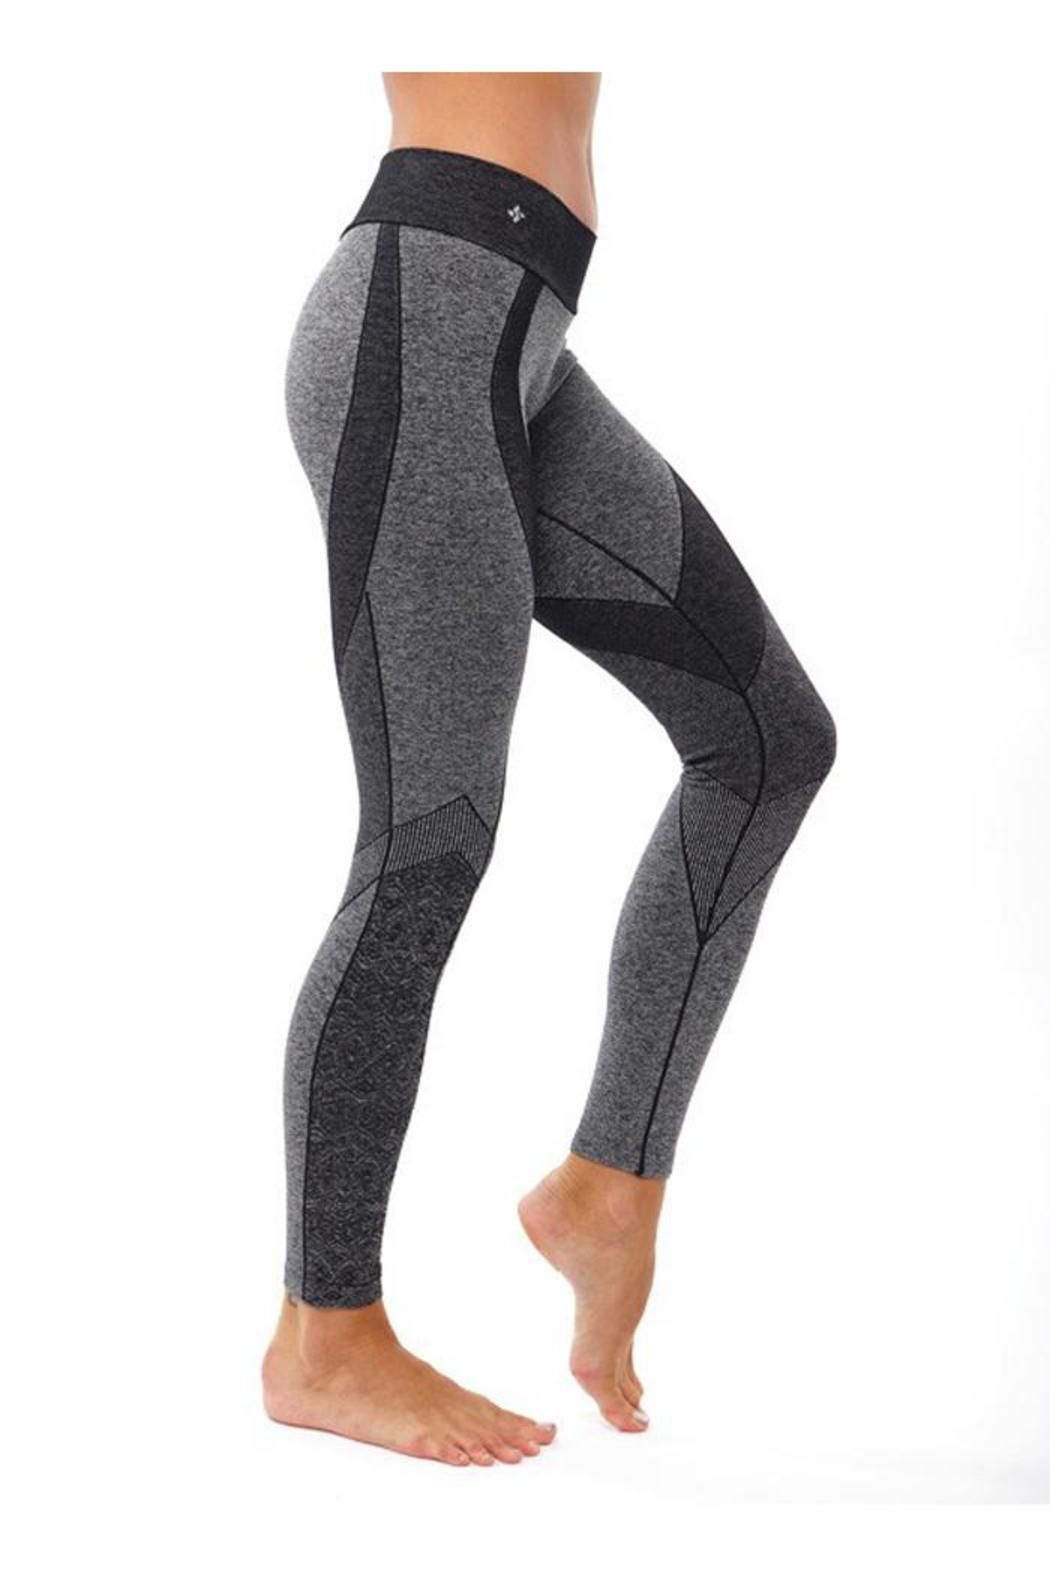 cadafe21d868b These moderate compression leggings are amazing with their seamless design  and jacquard patterns. So much fun and so functional. Wear to yoga, workout  or ...